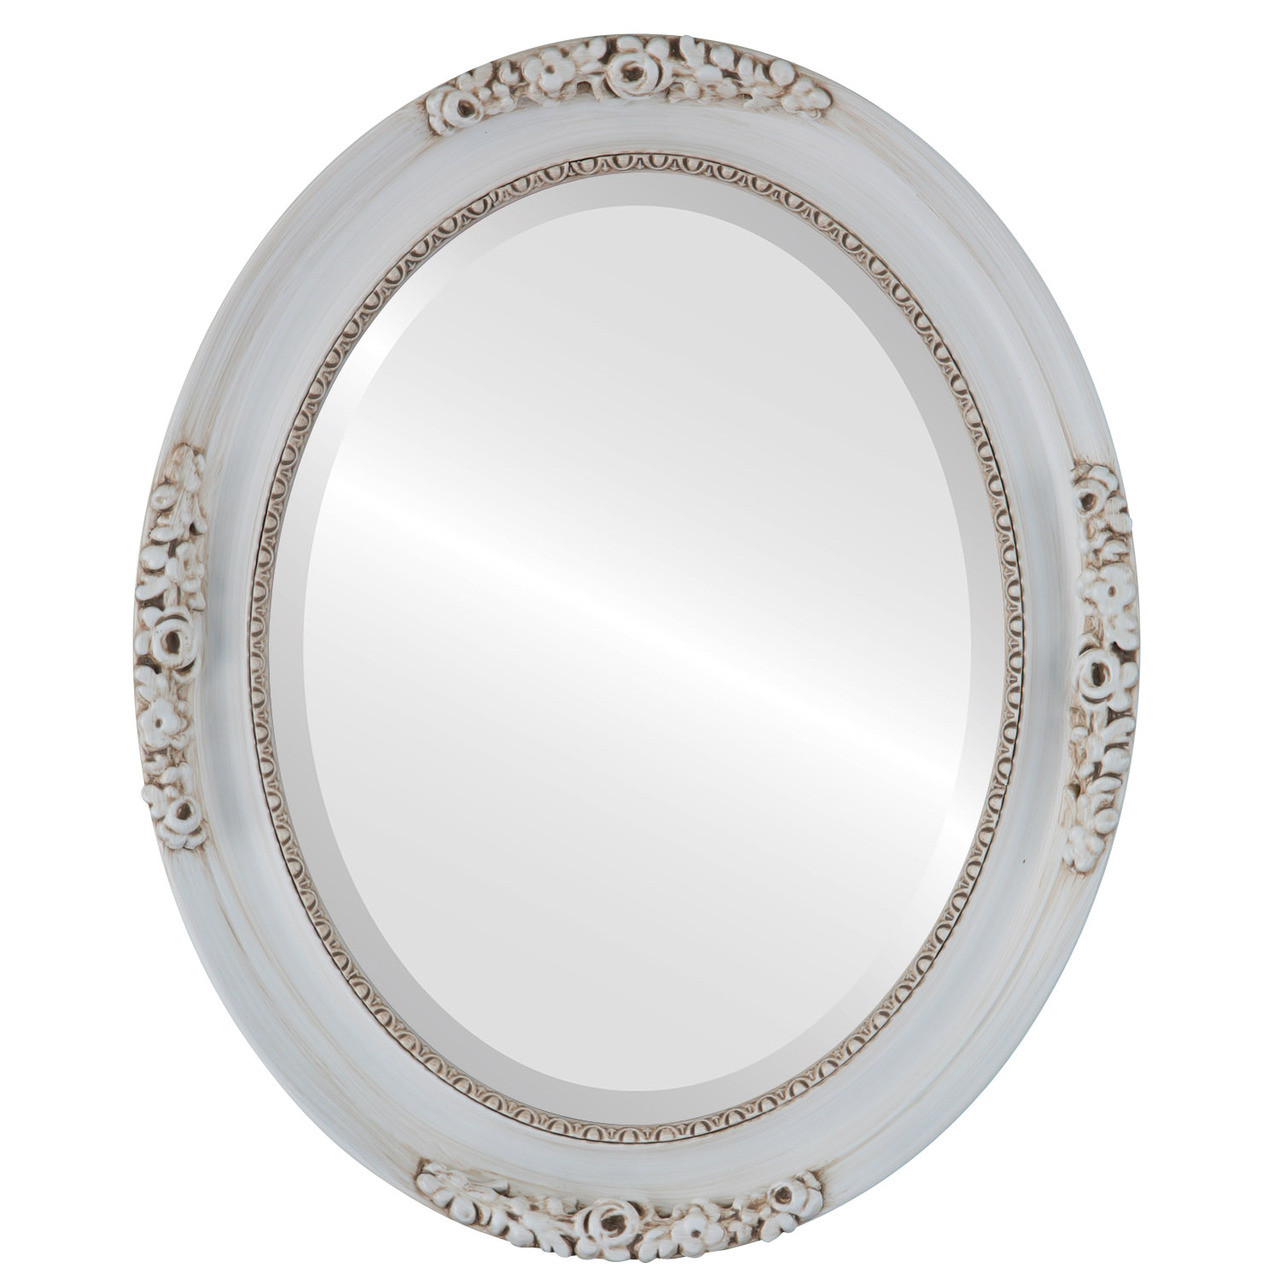 Vintage White Oval Mirrors from $146 | Free Shipping